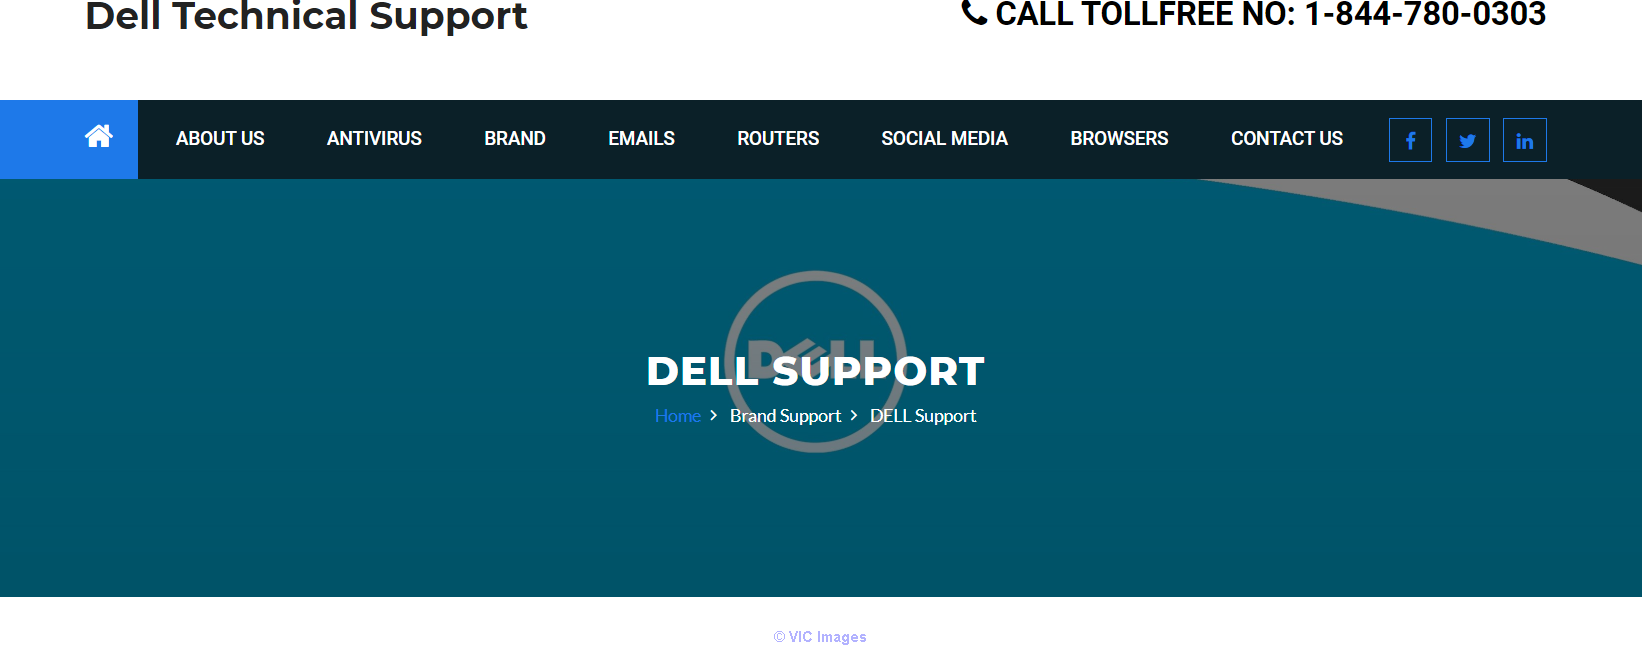 Dell Support Canada Phone Number 1-844-780-0303